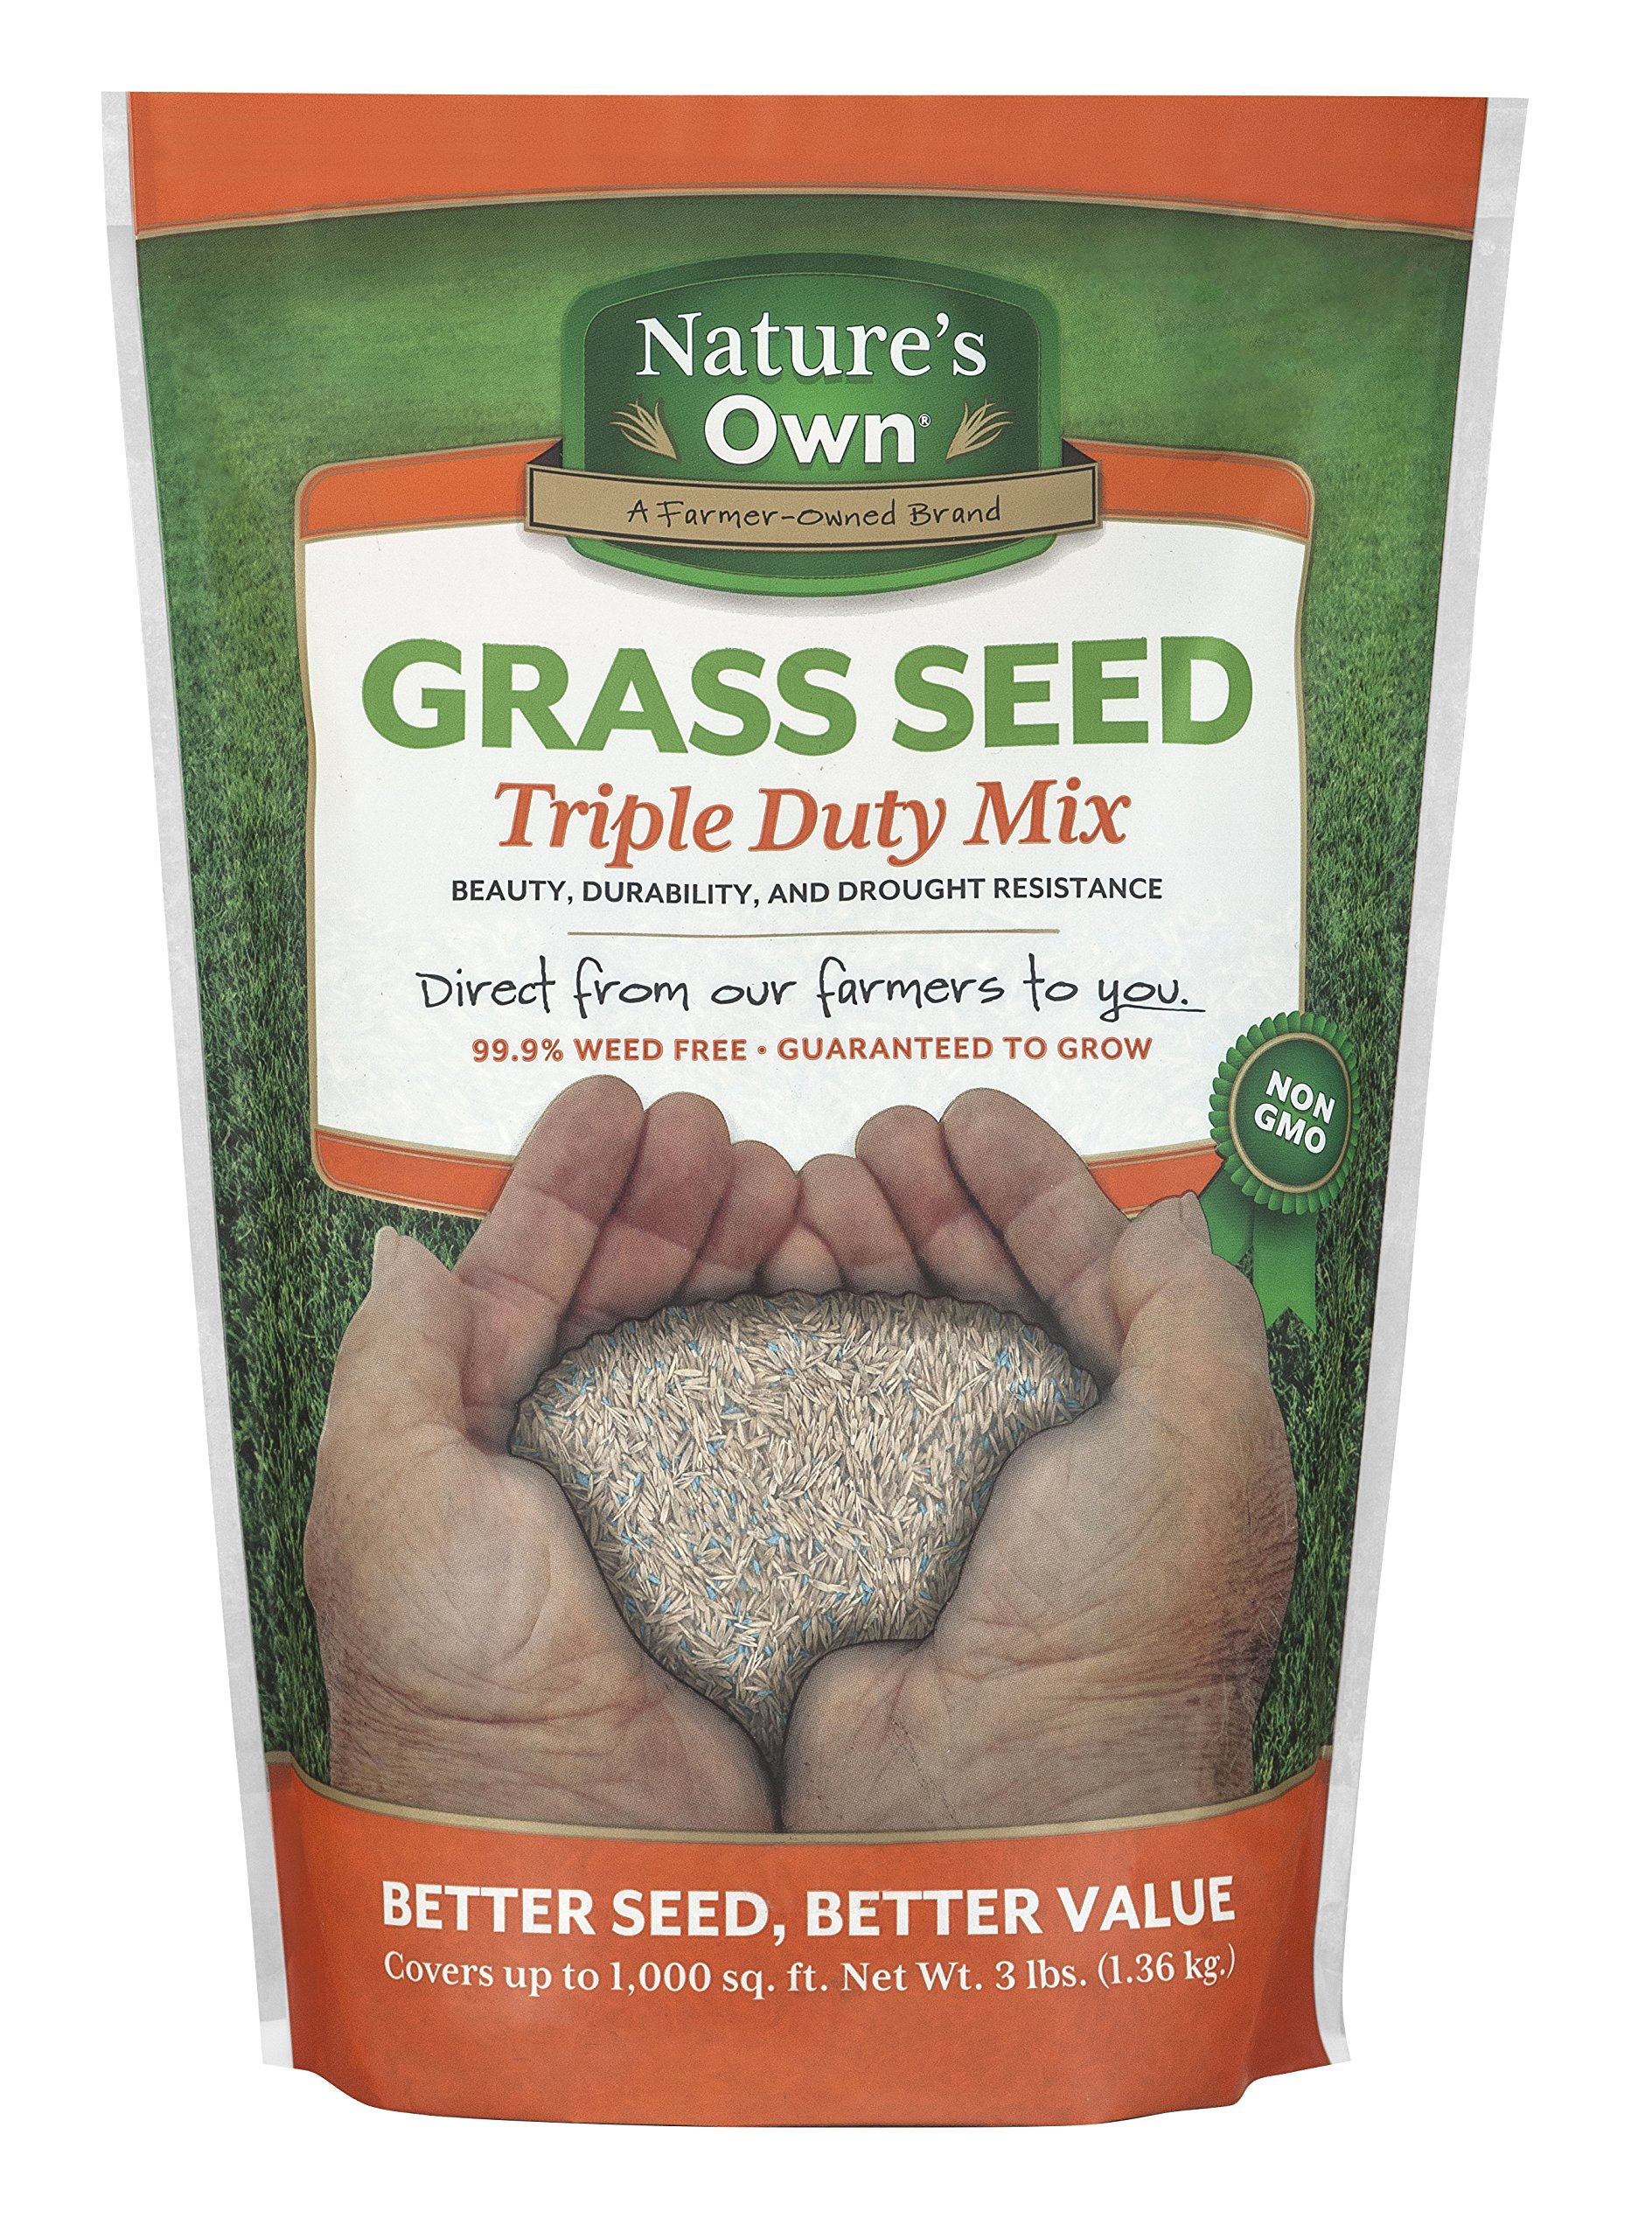 Mountain View Seeds Natures Own Triple Duty Mix Grass Seed, 3-pounds